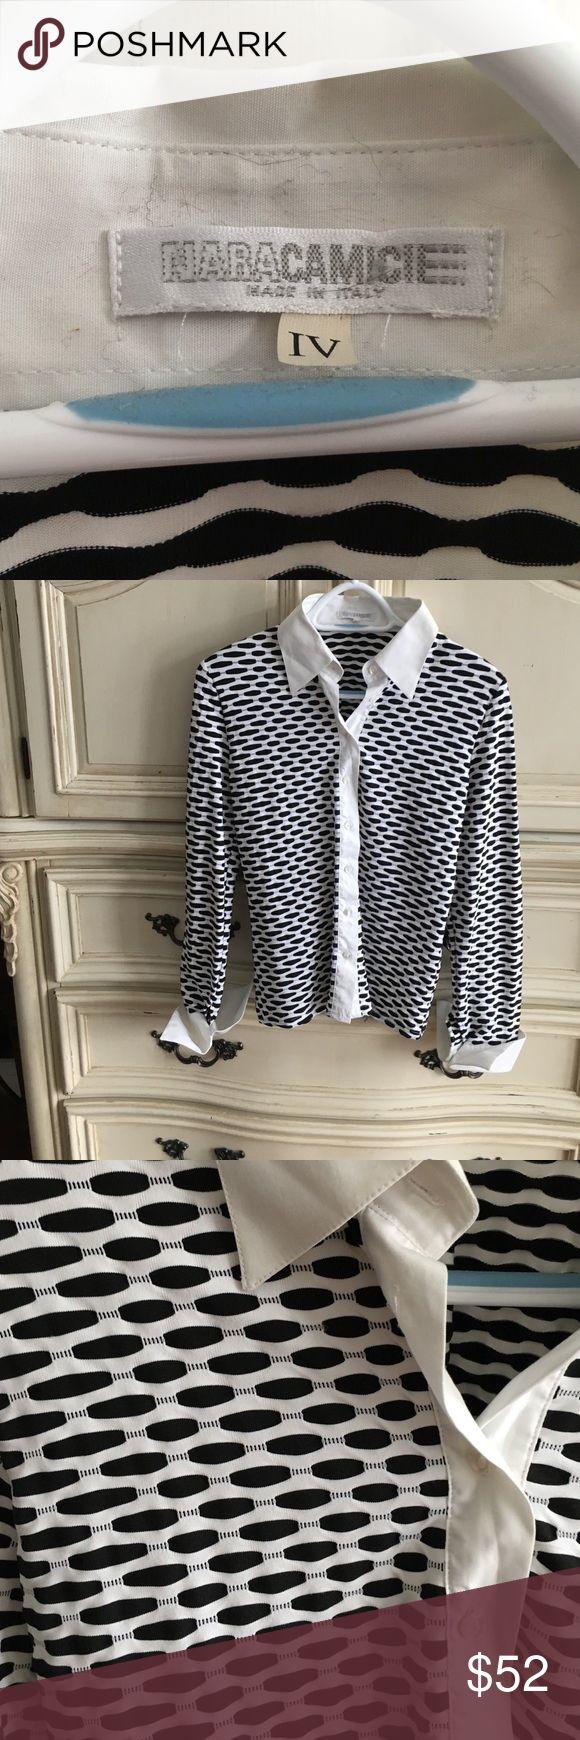 Nara Camicie tailored stretch shirt Stunning (made in Italy) black and white stretch shirt. Collar and cuffs make this a classic. It's fits to the body so could be four to six. Nara Camicie Tops Blouses